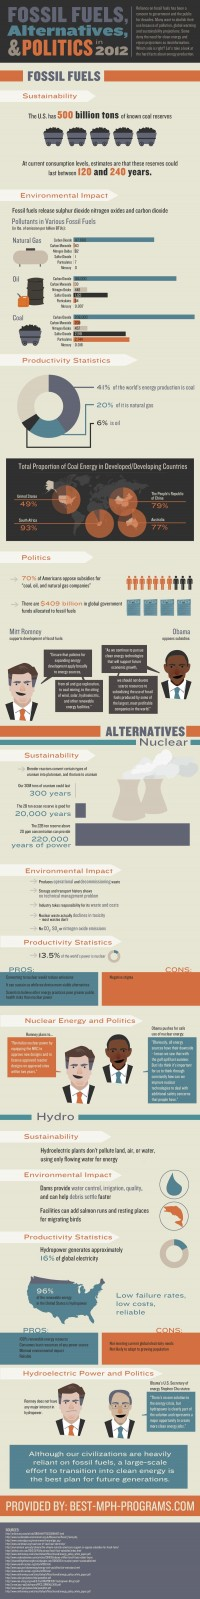 Fossil Fuels, Alternatives, and Politics in 2012